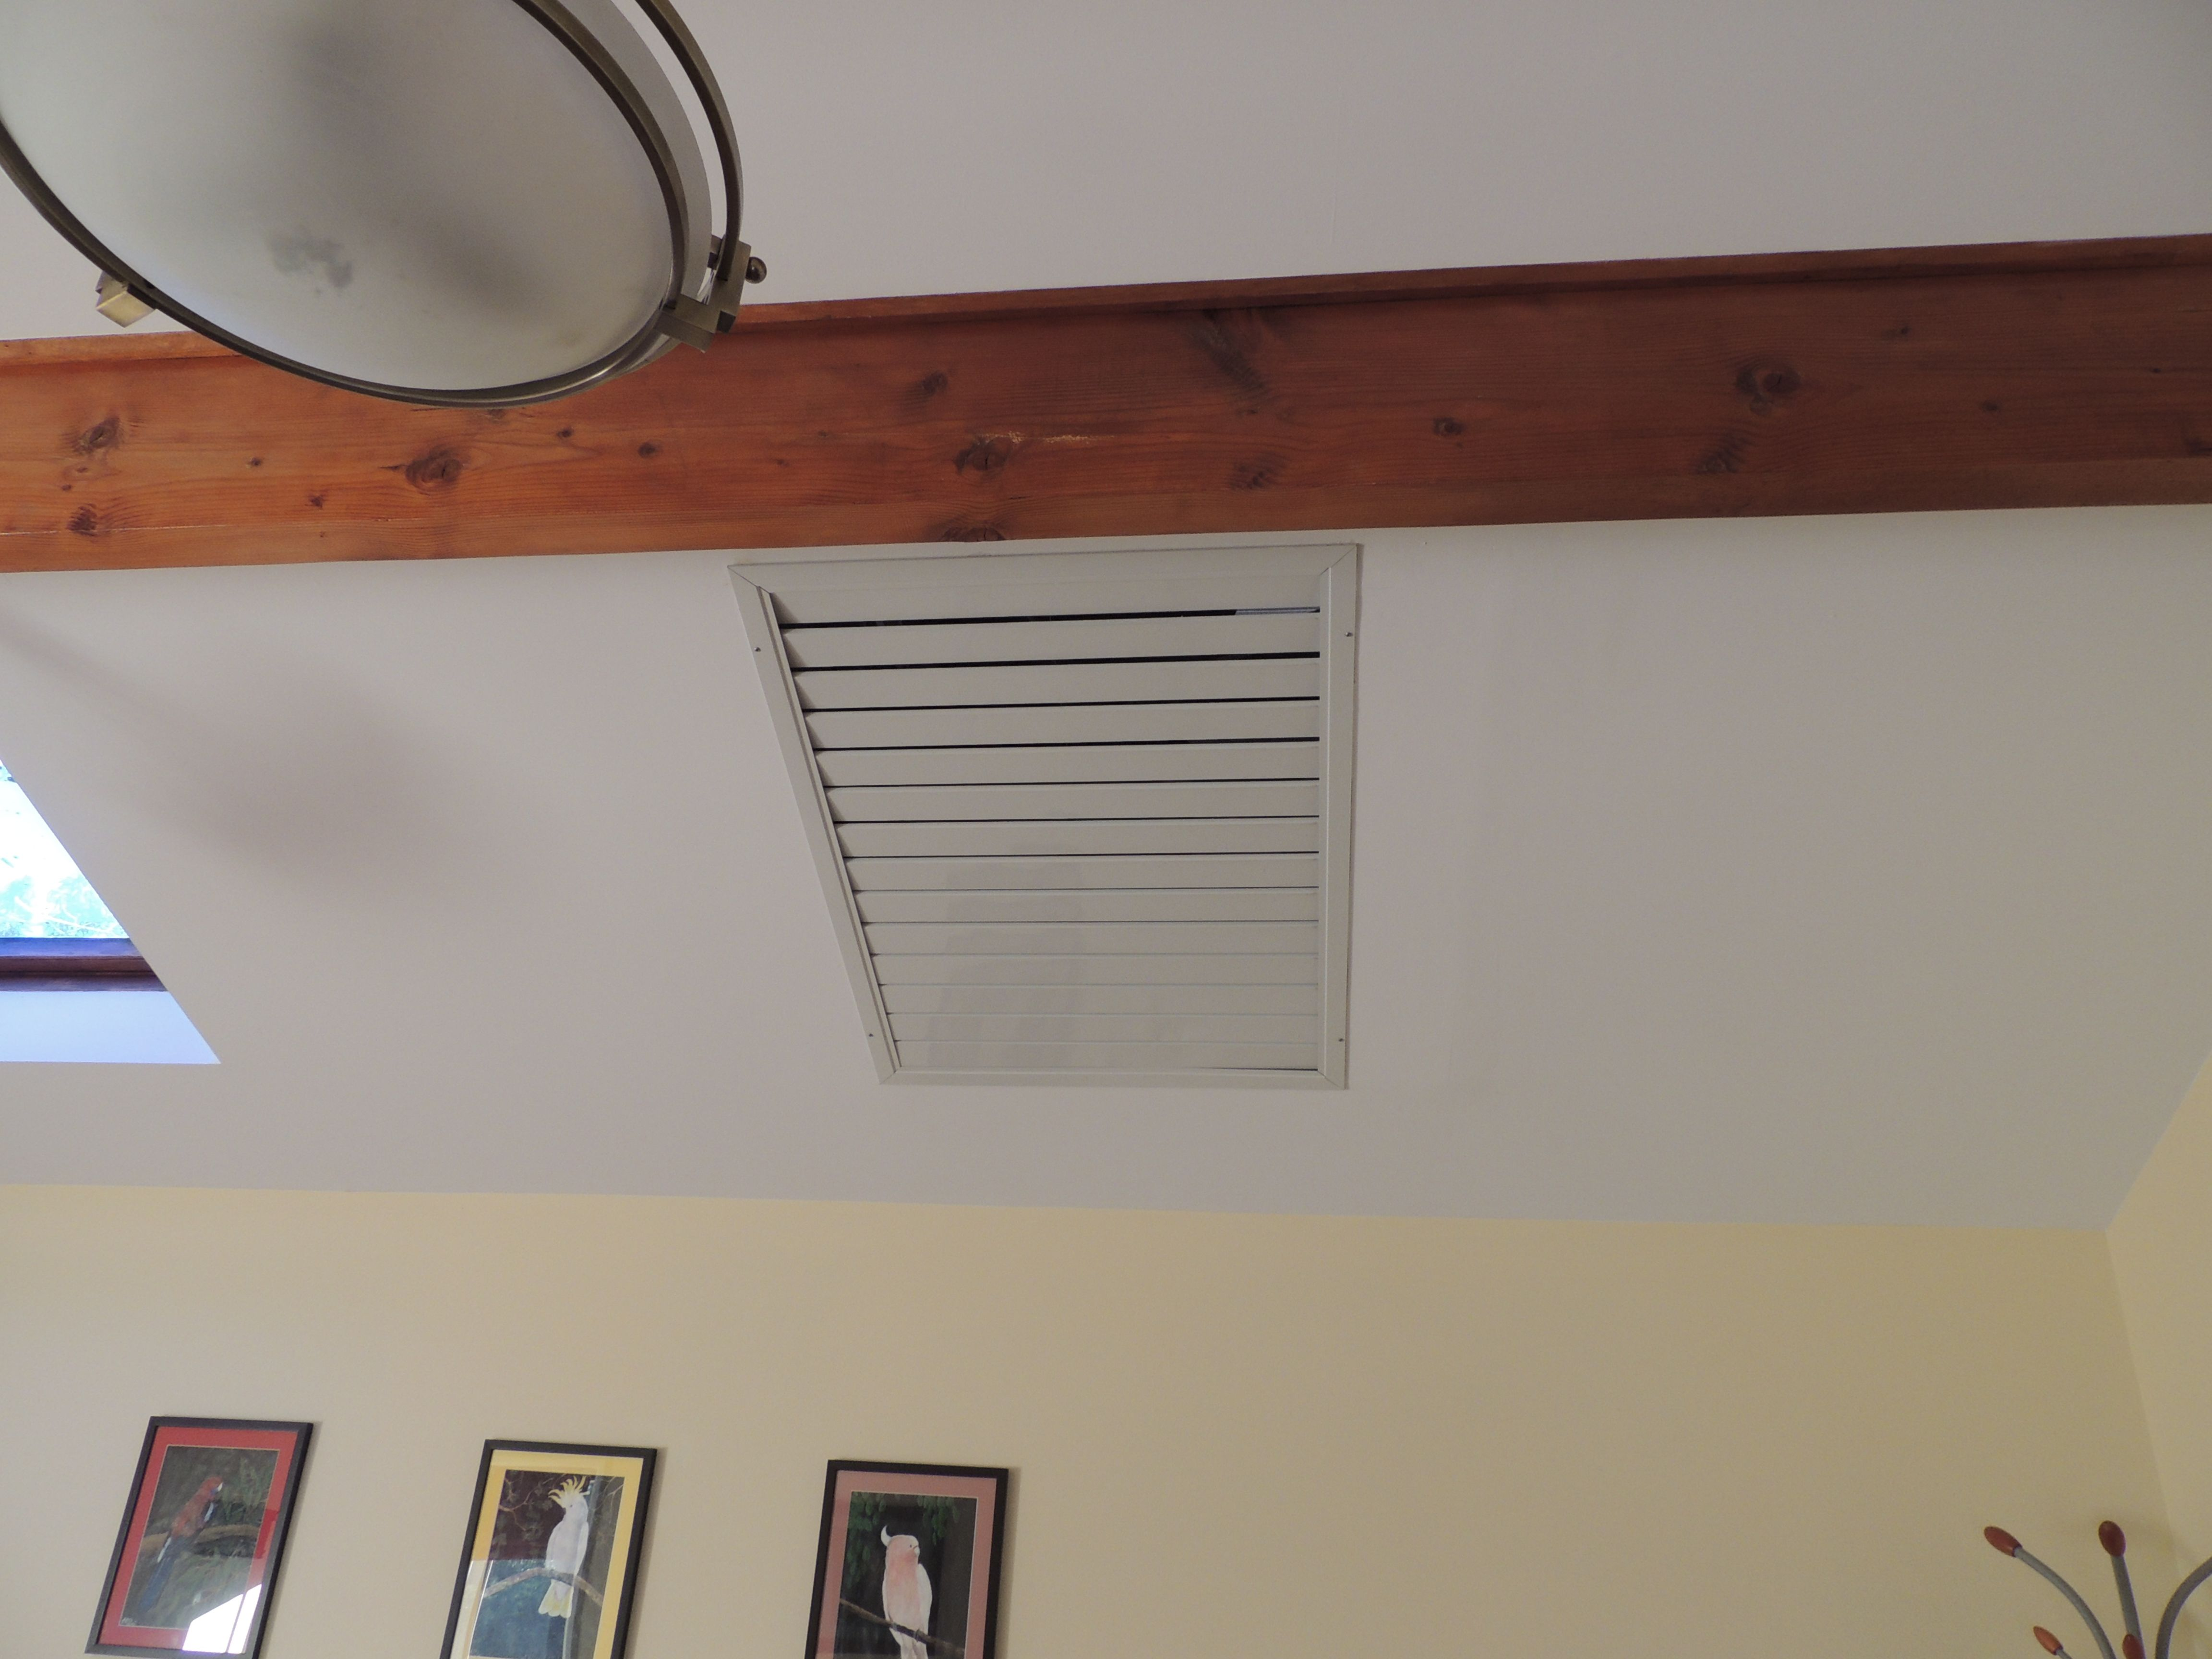 Exhaust fan for raked ceiling httpurresults pinterest exhaust fan for raked ceiling aloadofball Gallery